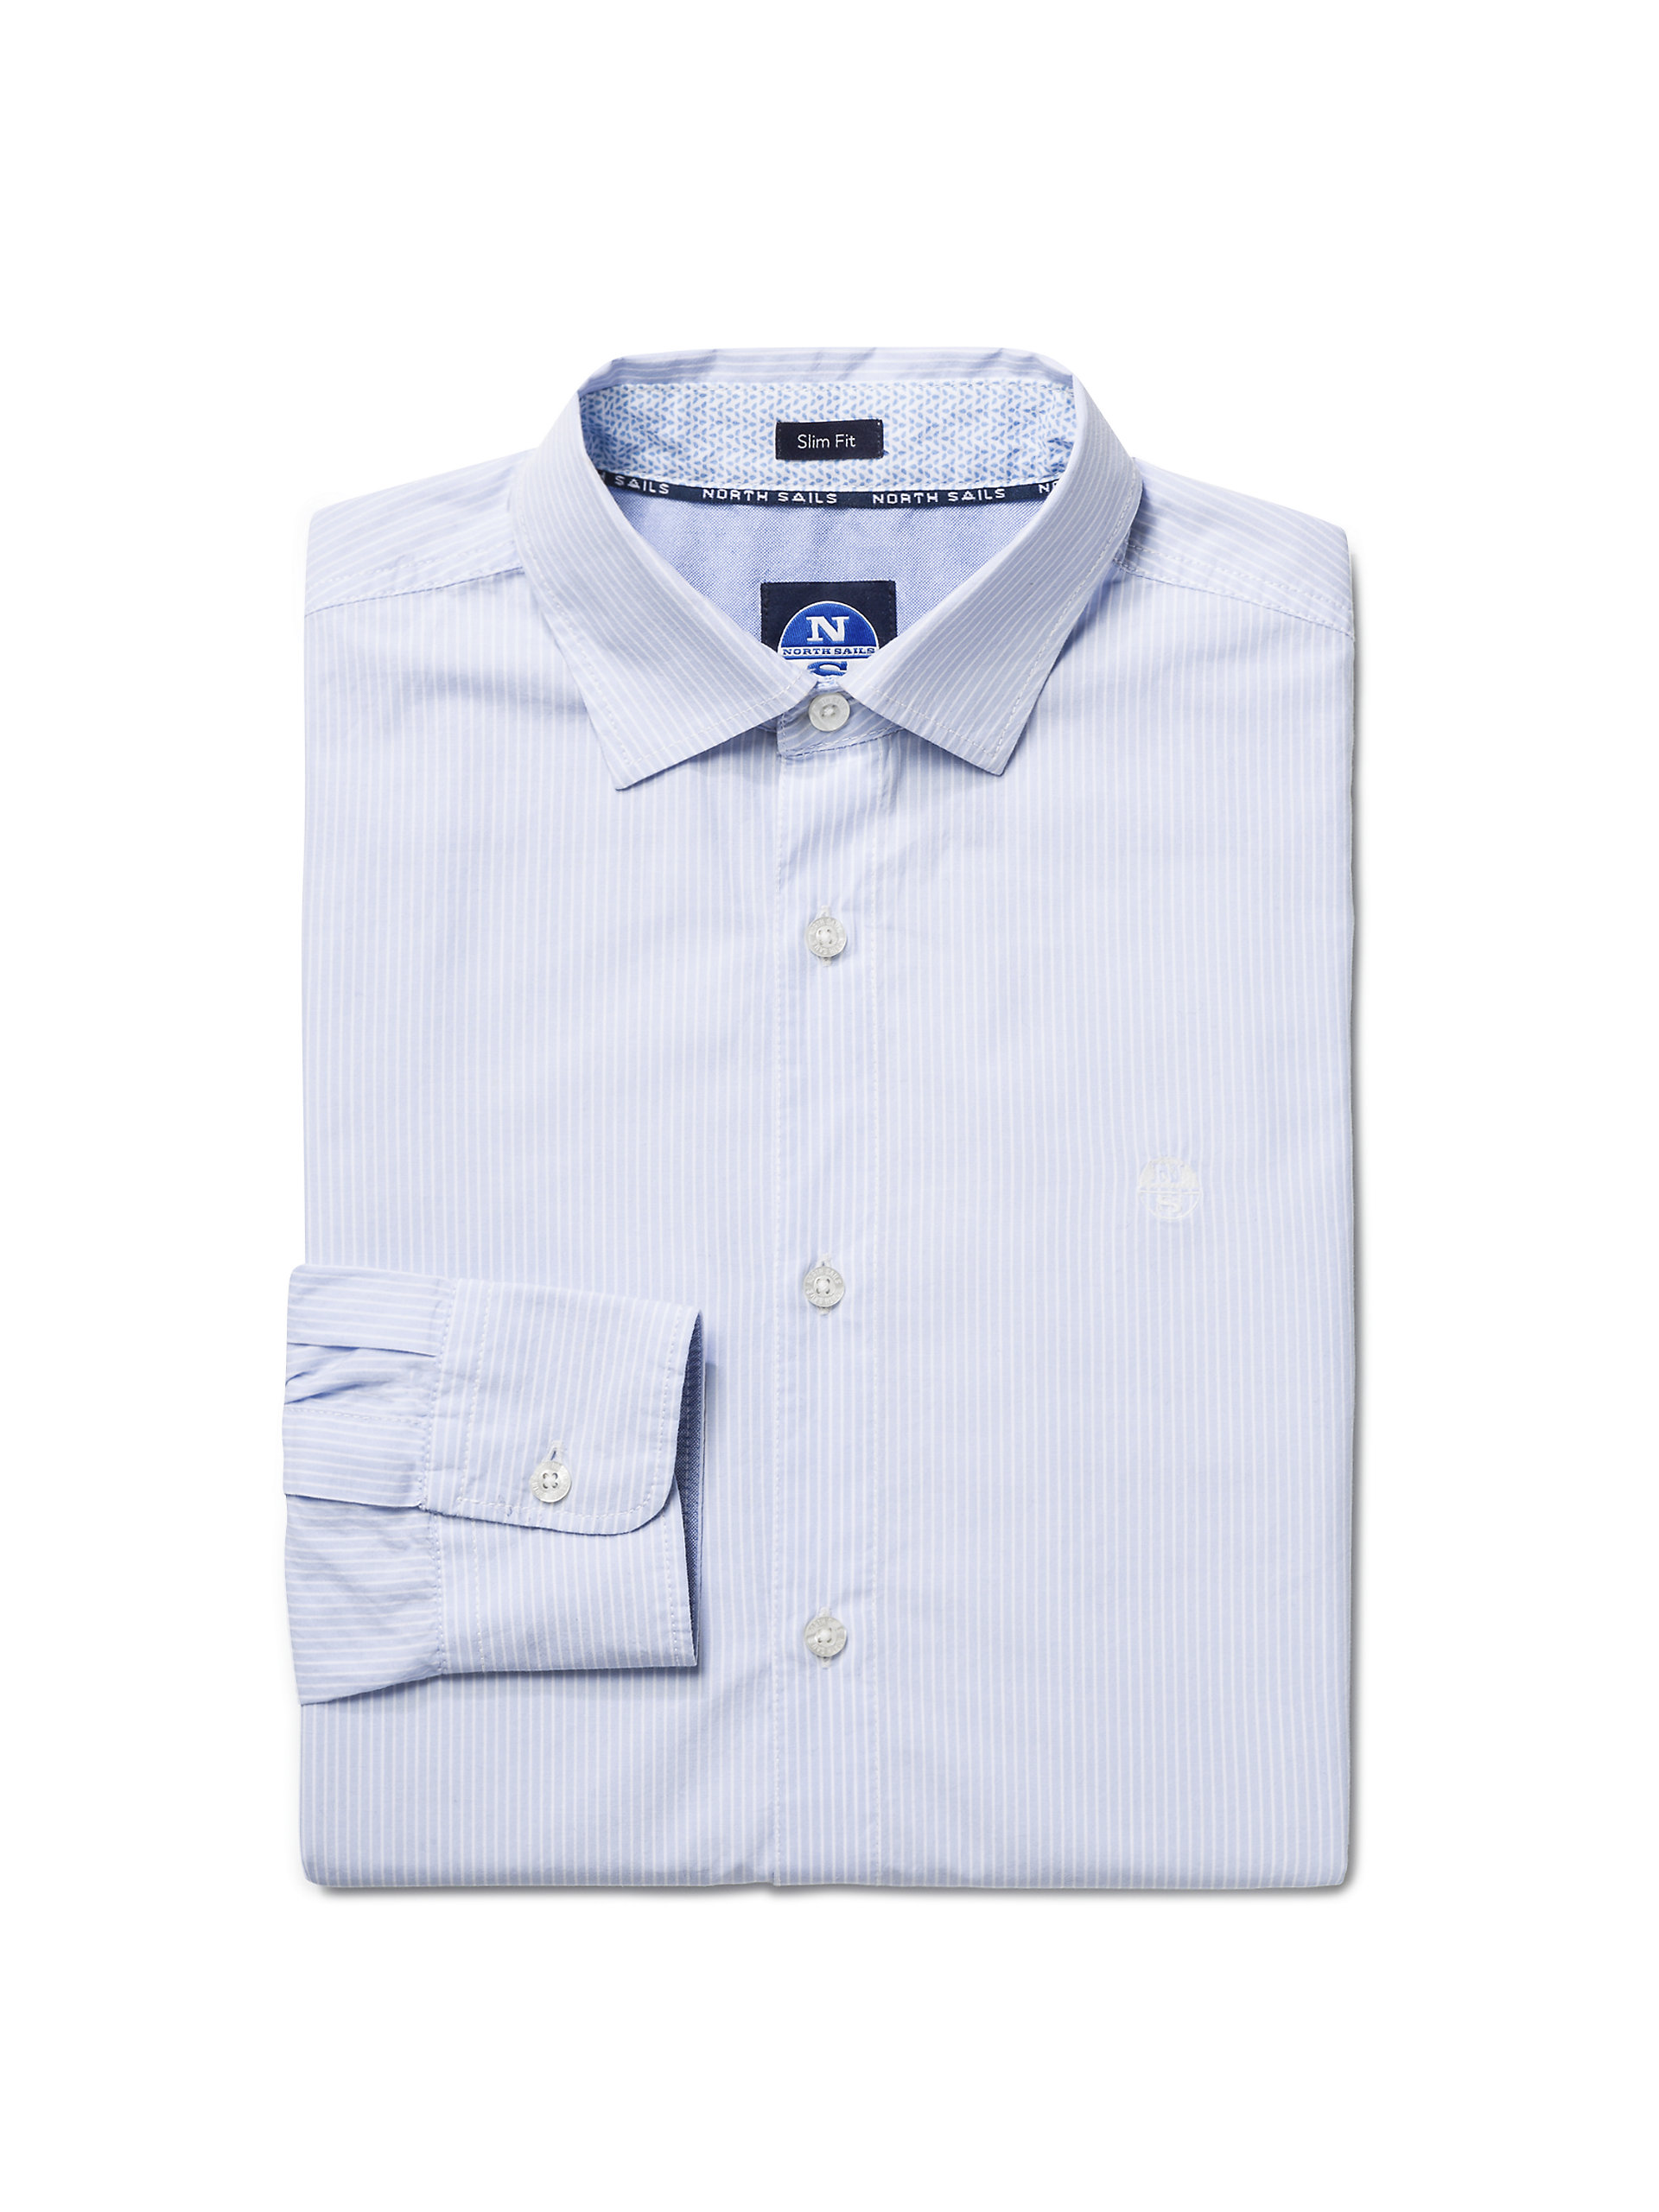 North Sails Mens Poplin Long-Sleeved Button-Down Shirt with Stripes Slim Fit